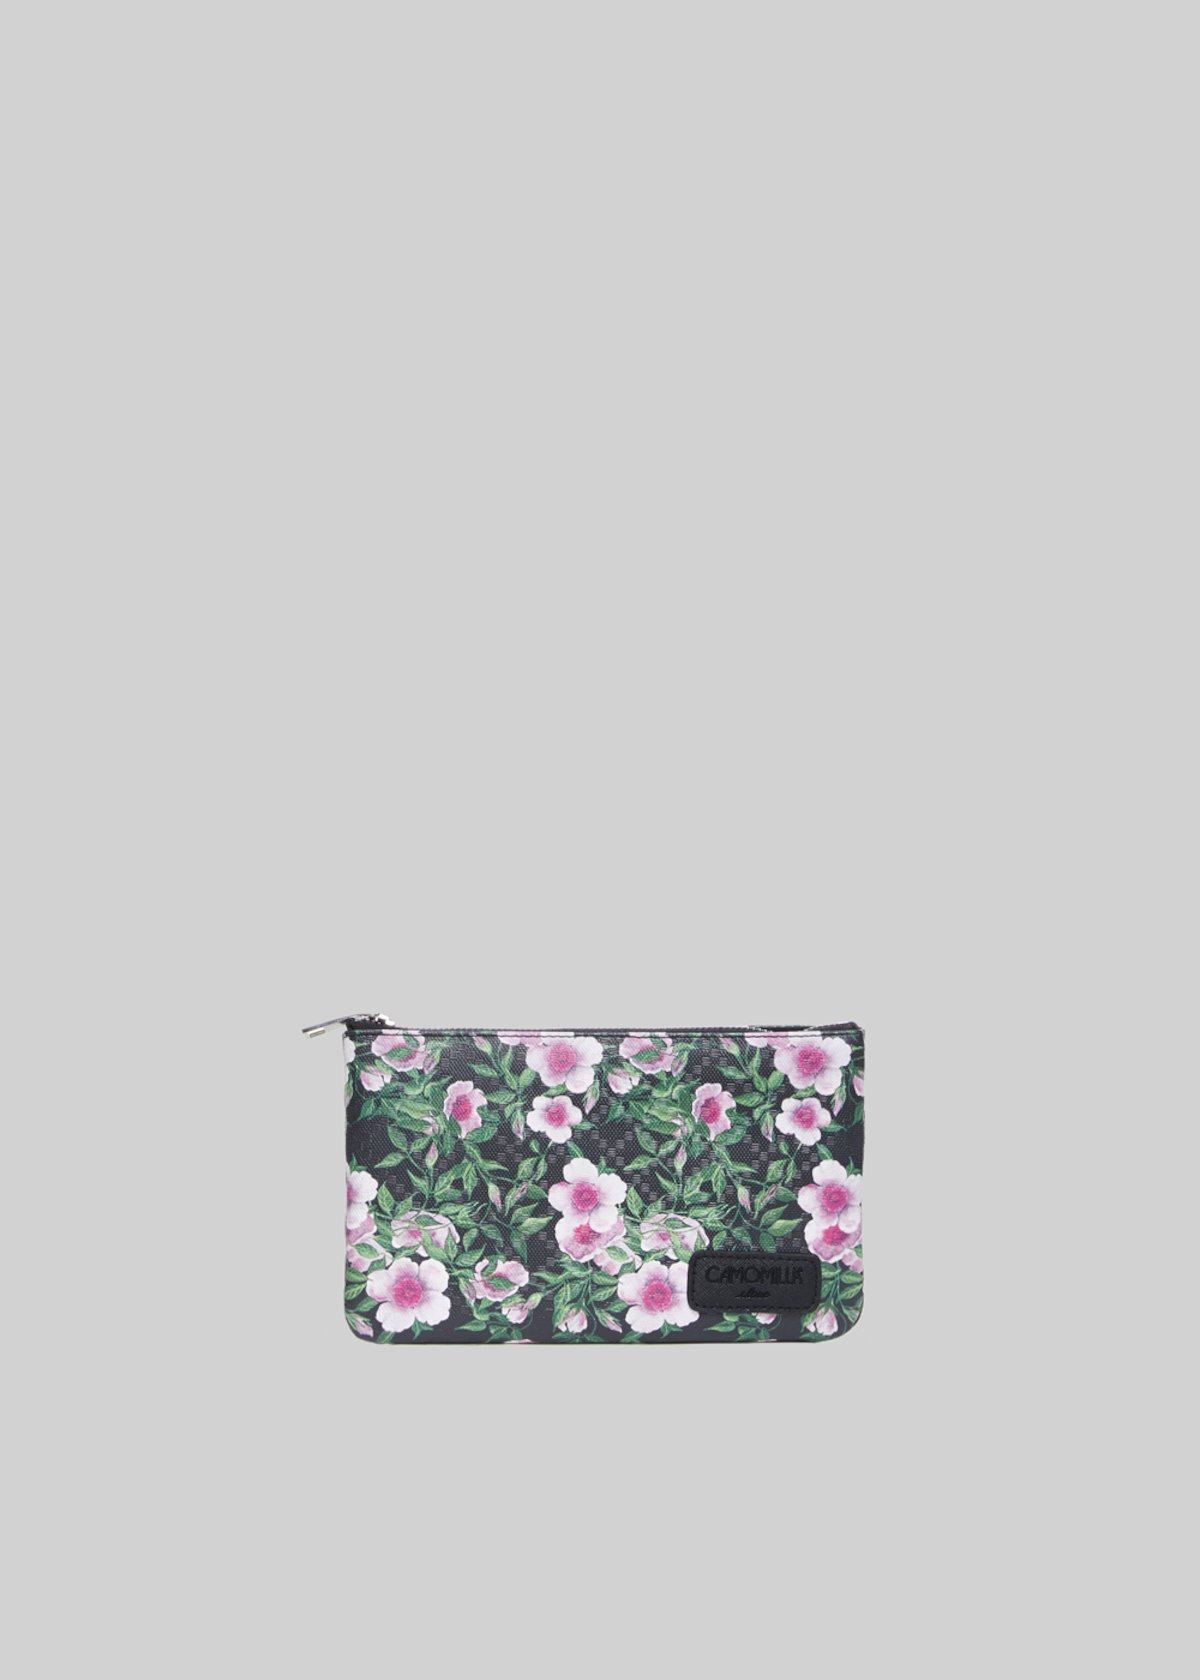 Pochette Tongaflo4 in ecopelle pink flowers print